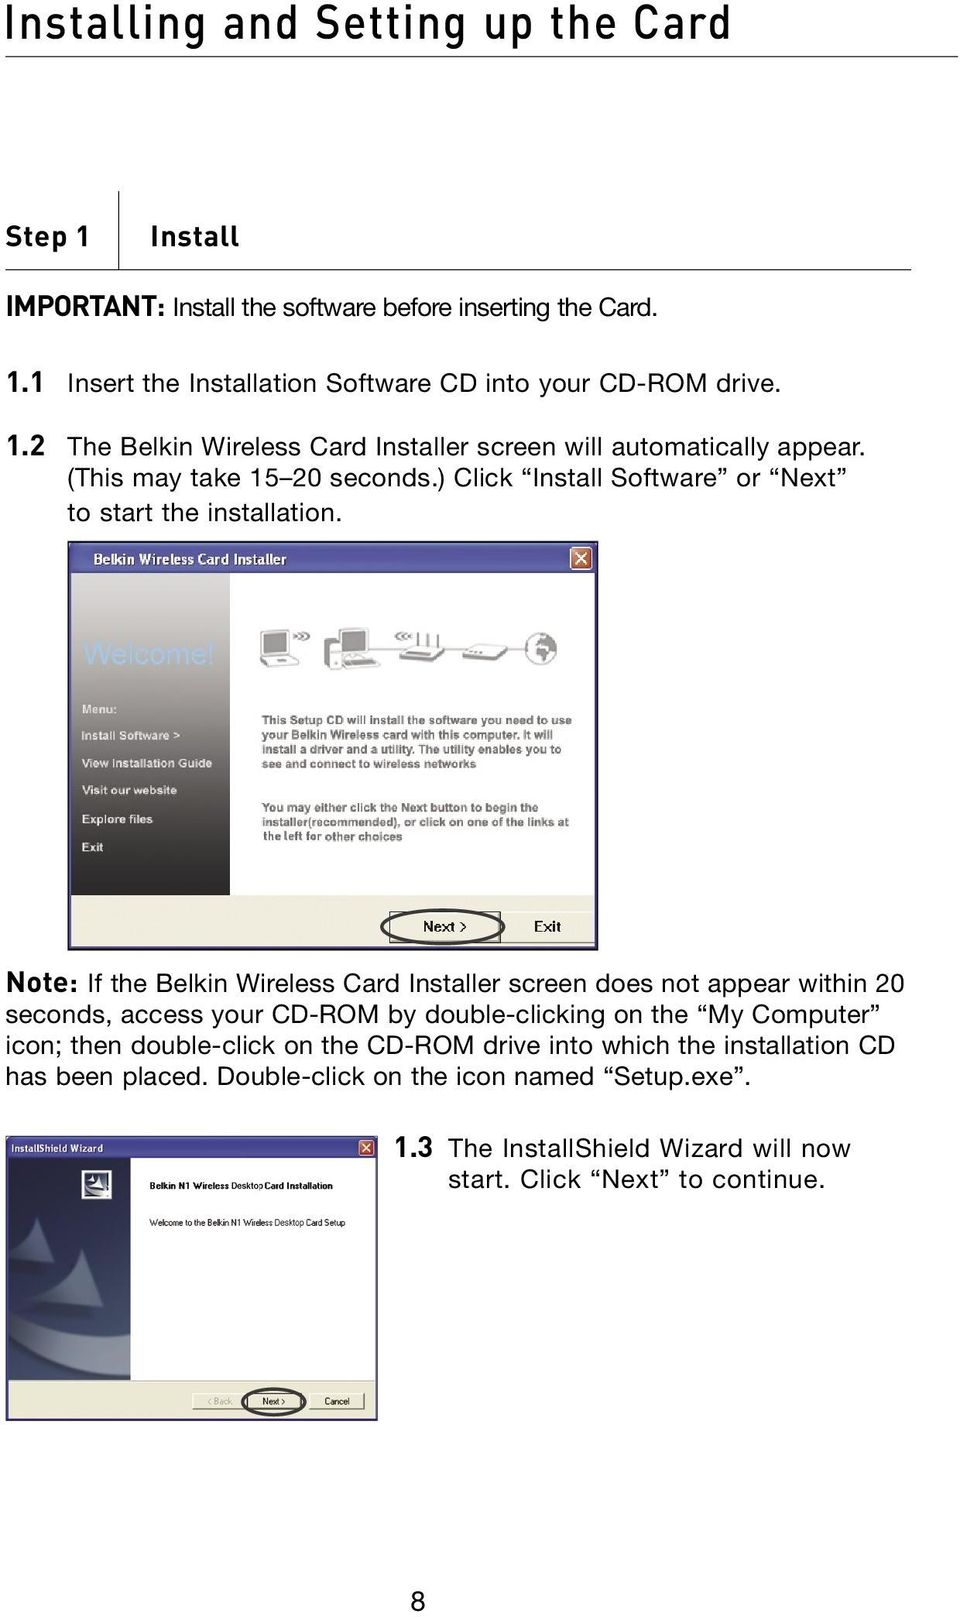 Note: If the Belkin Wireless Card Installer screen does not appear within 0 seconds, access your CD-ROM by double-clicking on the My Computer icon; then double-click